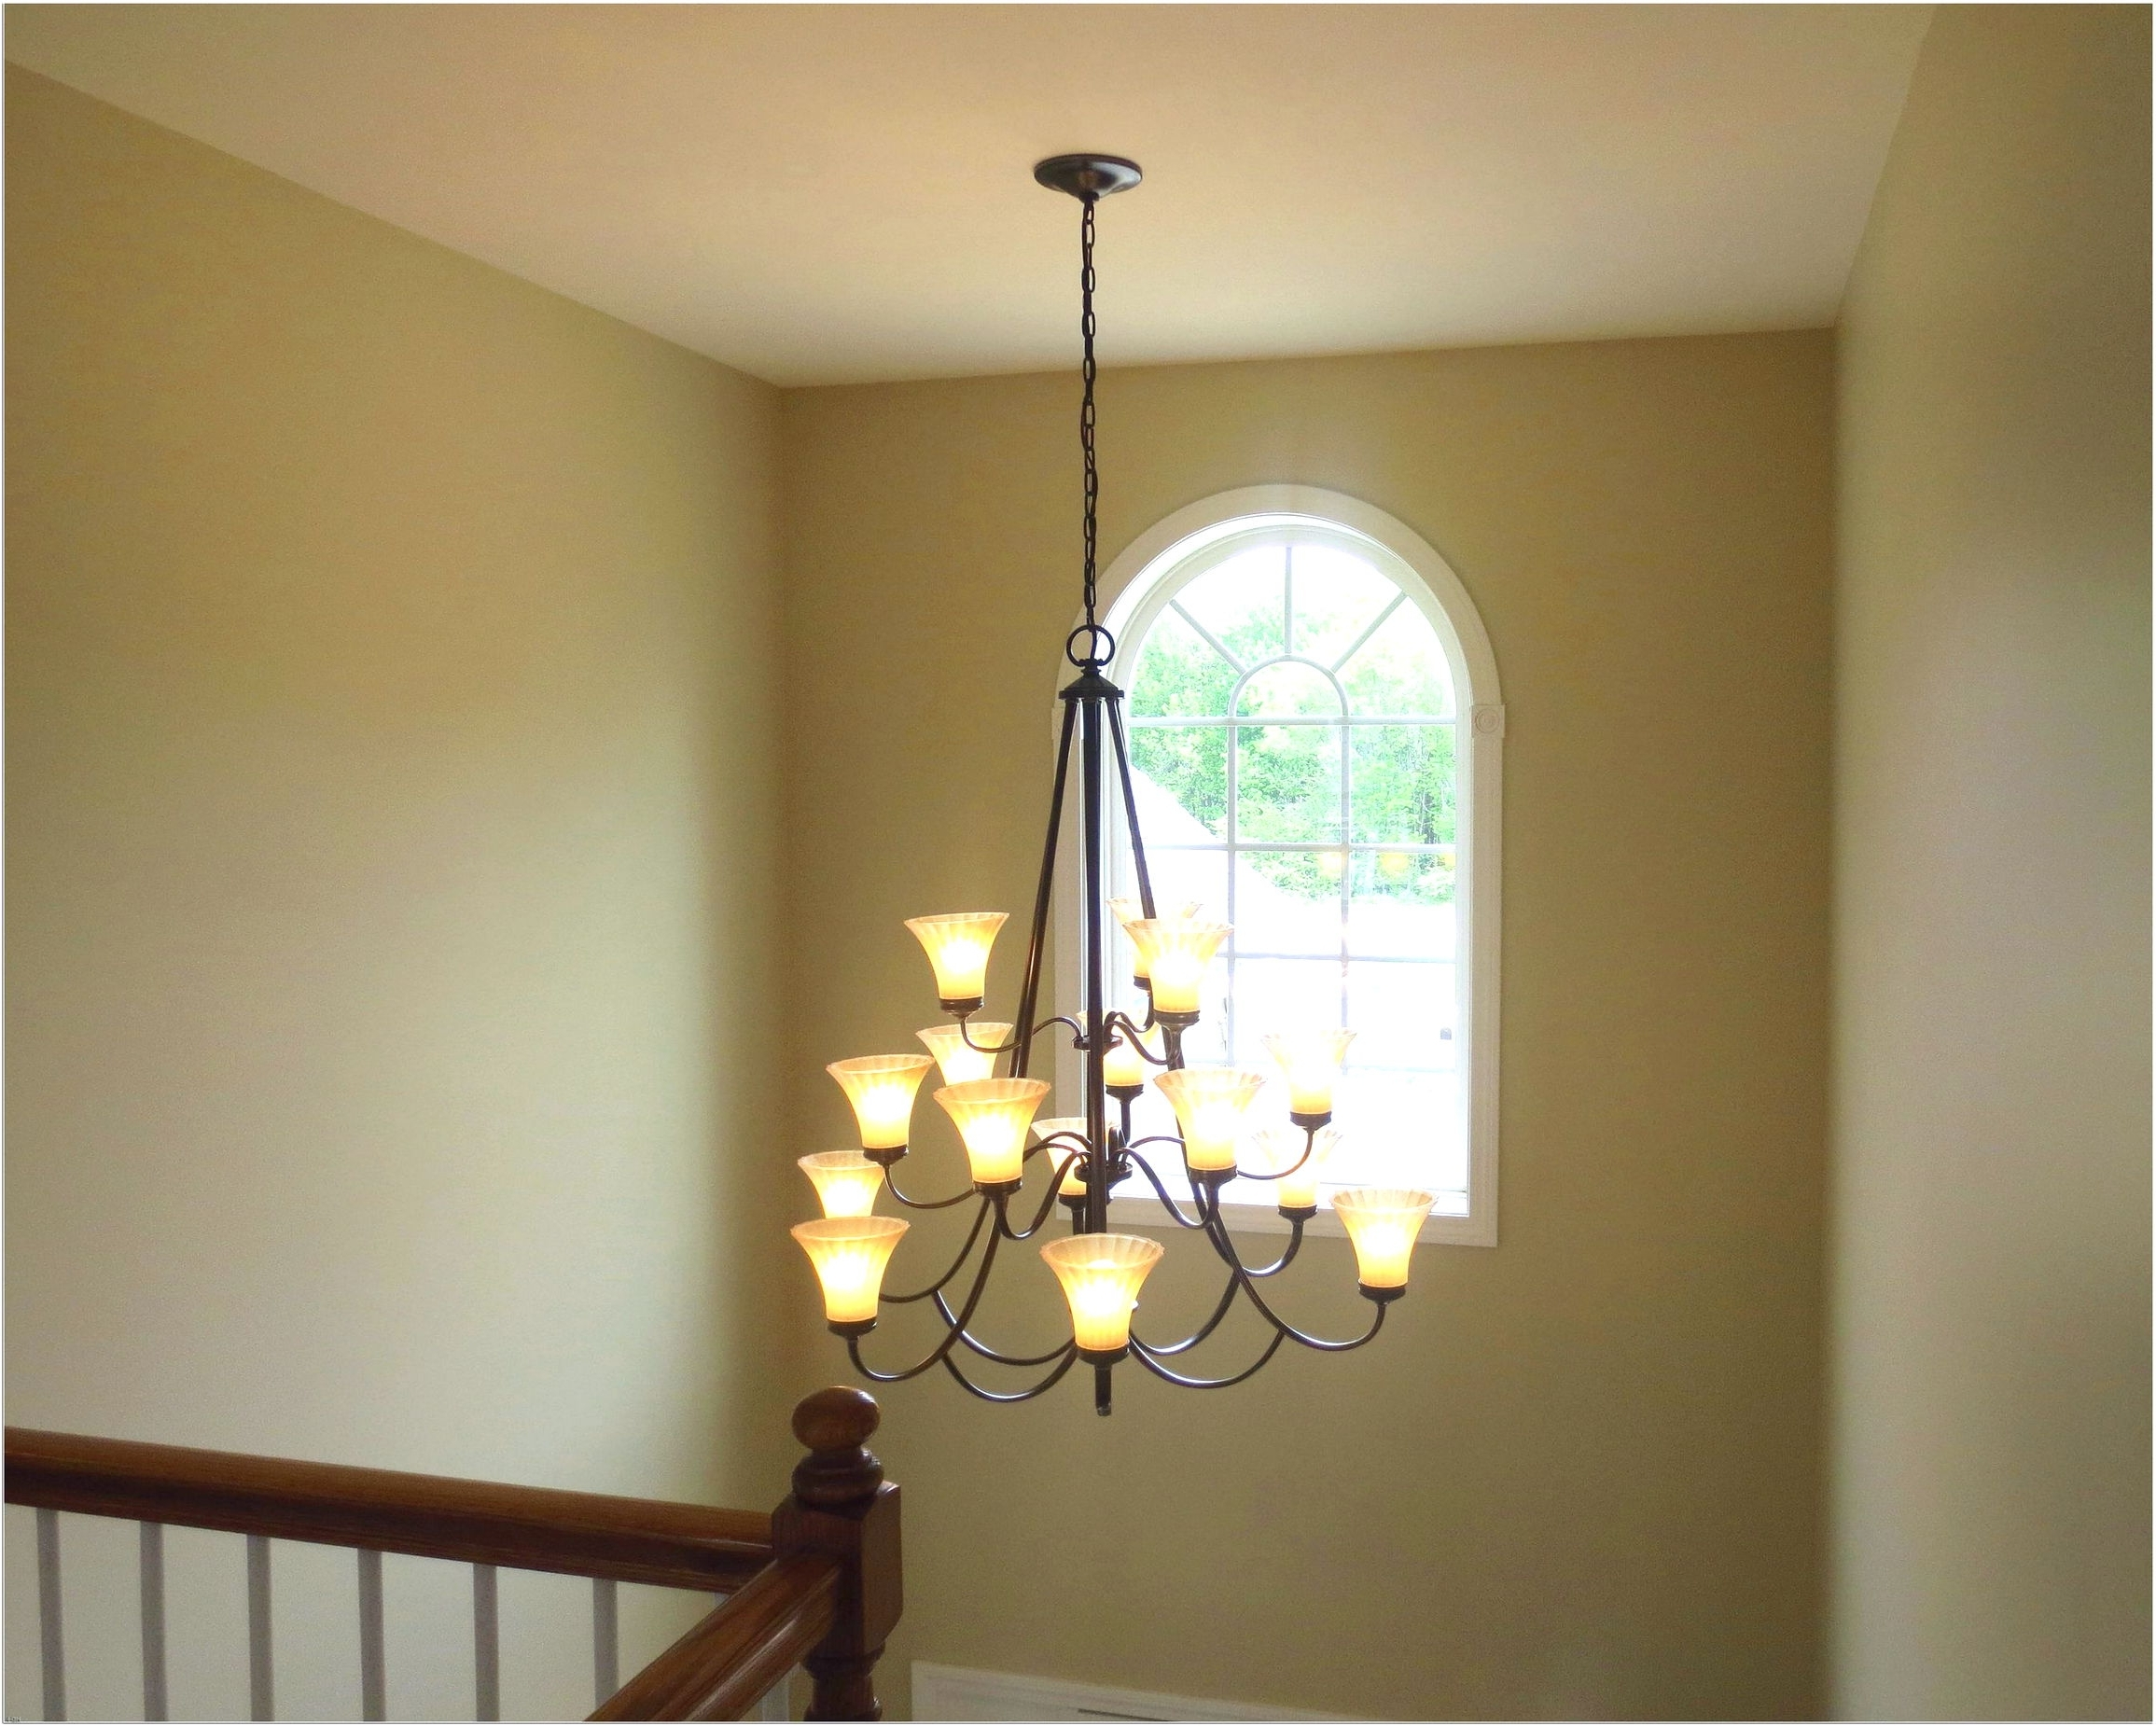 Stairwell Chandelier Intended For Well Known Stairwell Chandelier Lighting – Chandelier Designs (View 10 of 20)